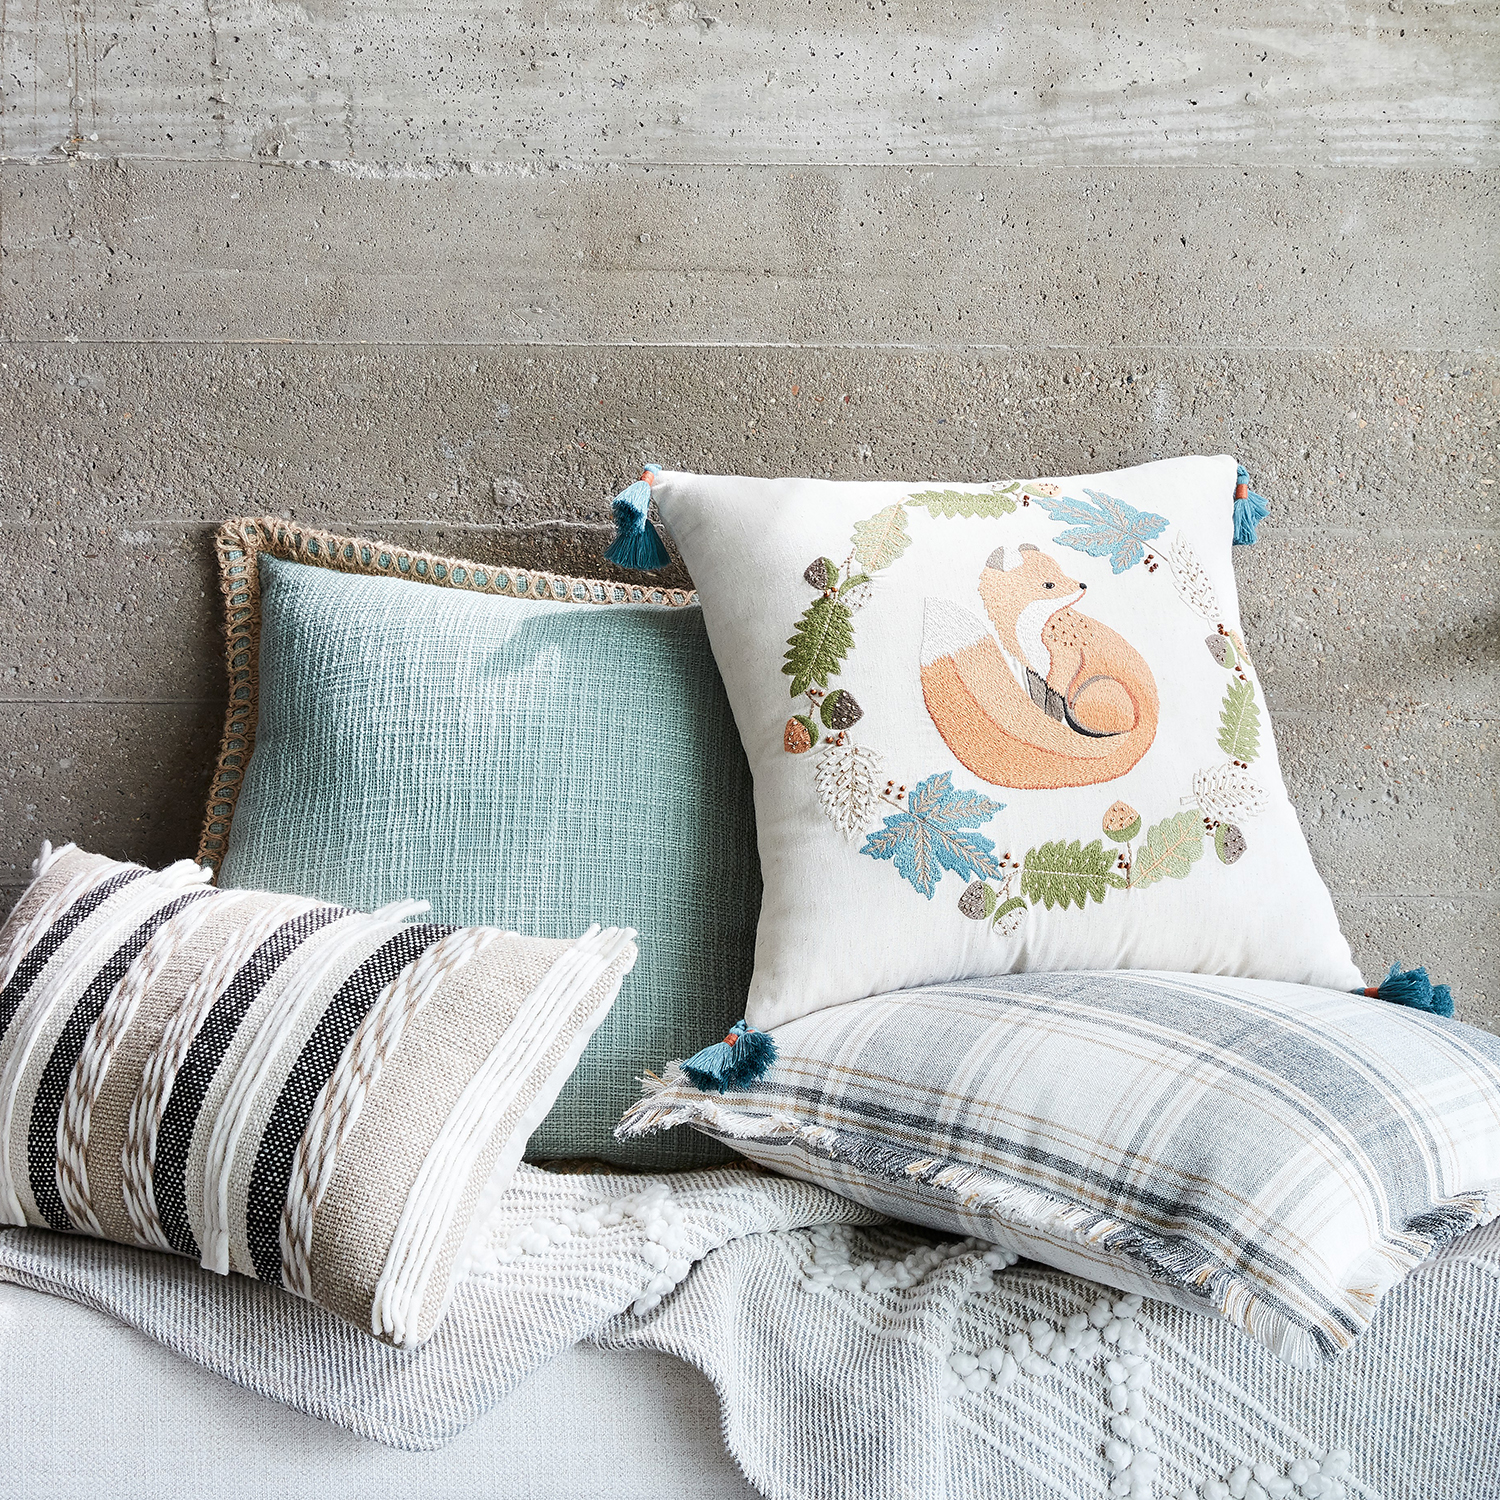 Harvest Fox Pillow with Tassels